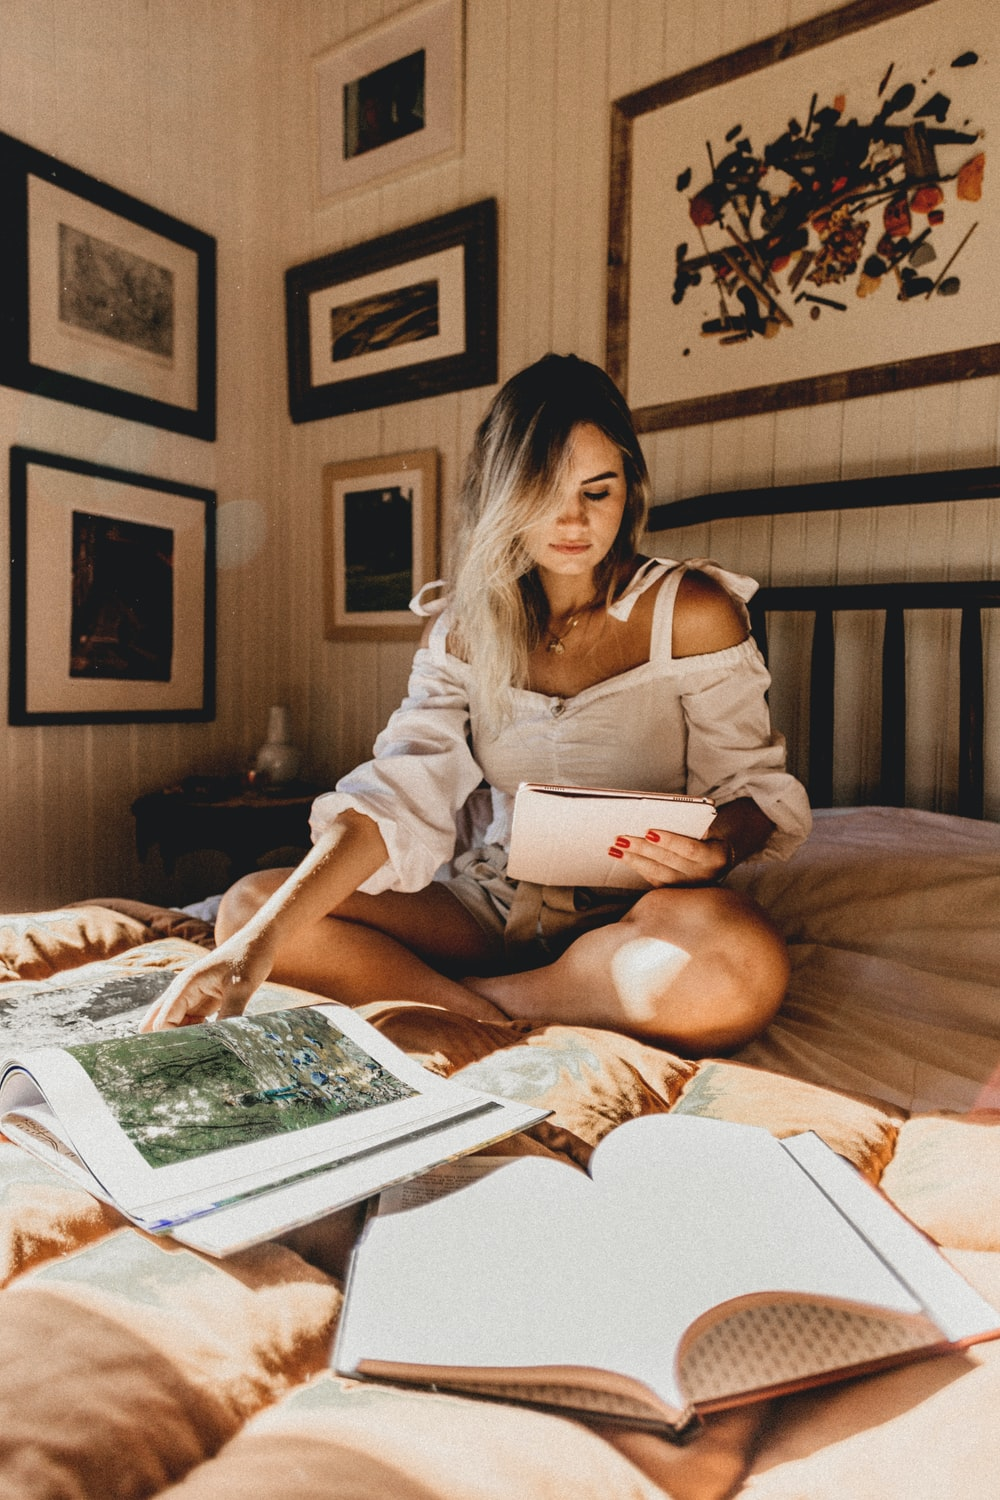 woman sitting on bed holding books